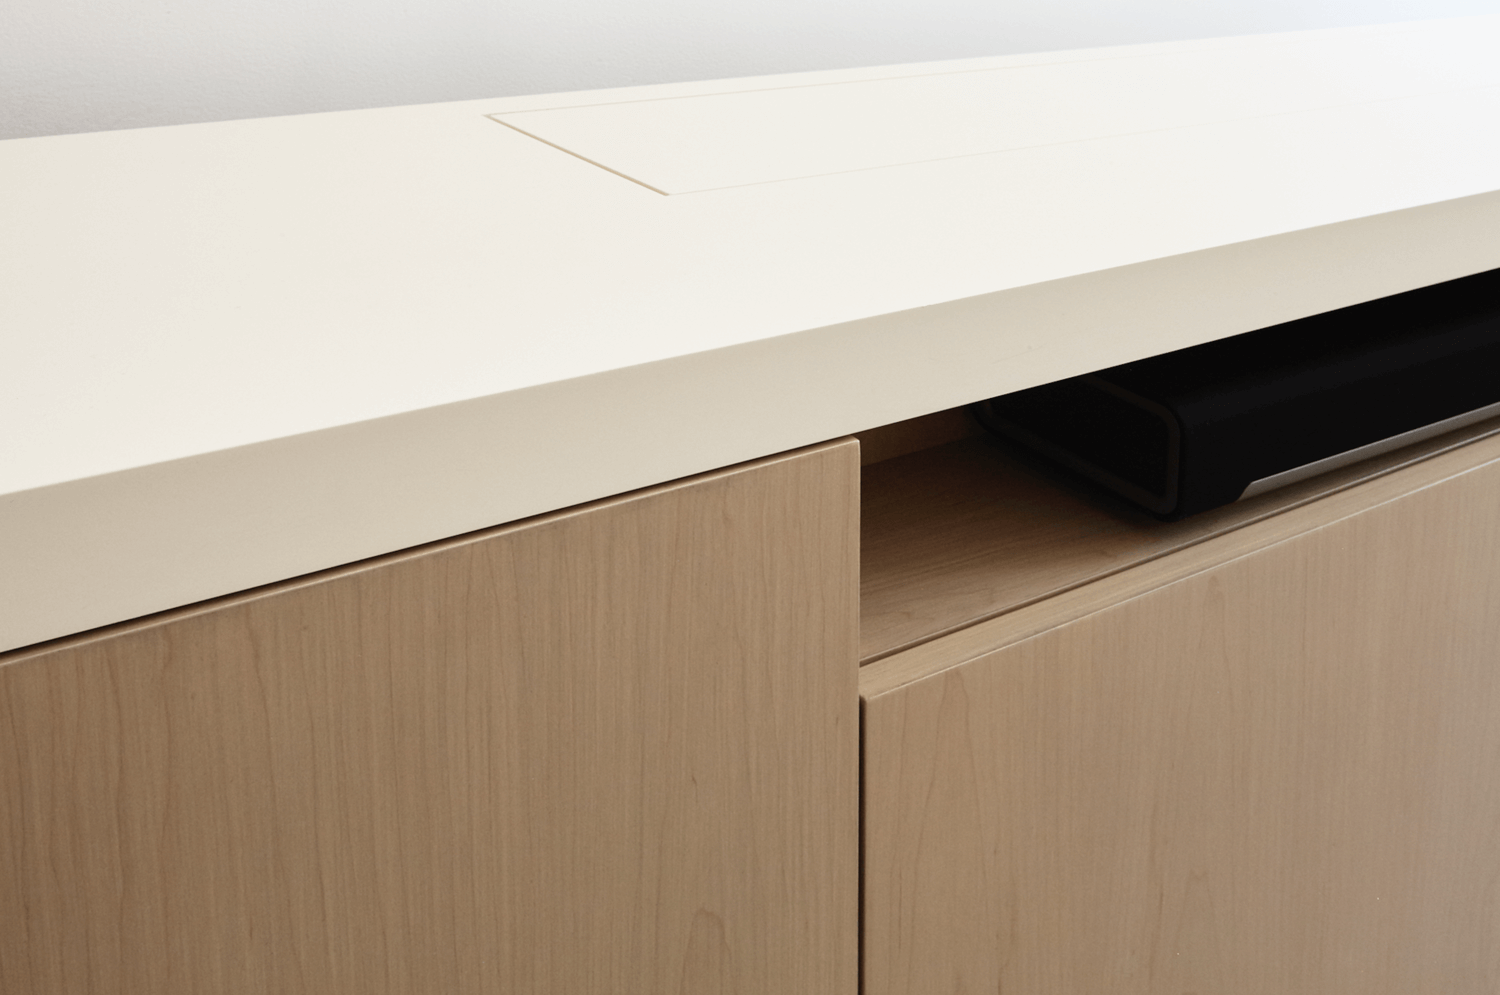 Aguirre Design - Modern and Minimal Oak Desk with Drawers